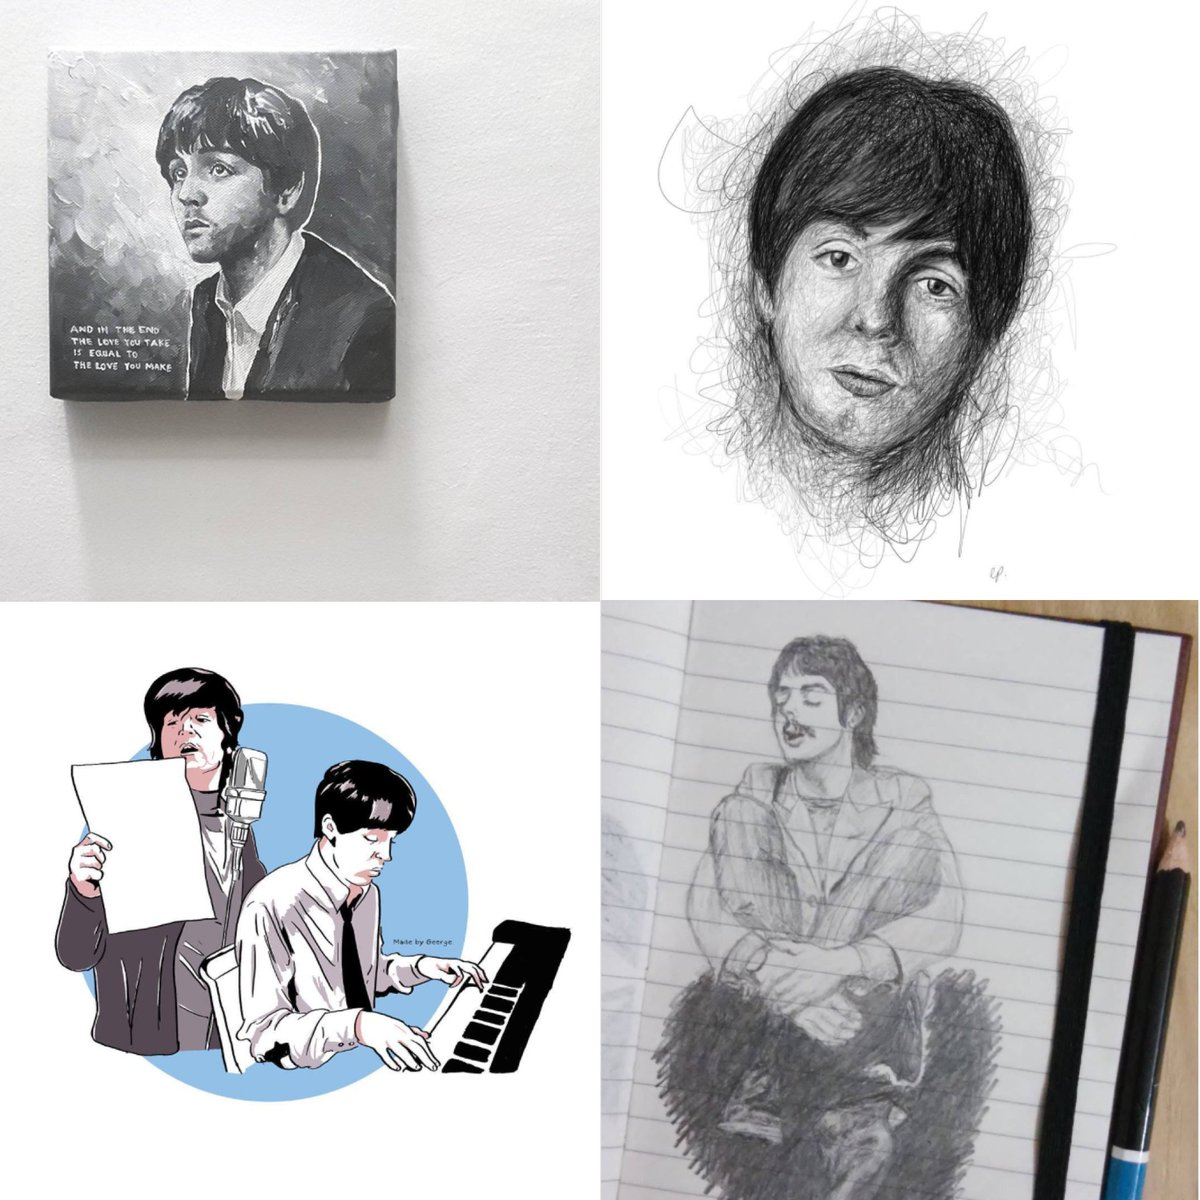 Paul McCartney On Twitter FanArtFriday By Instagram Users Tbof Bigmouthstrikes Pencilneedspaper Madebygeorge Share Your Fan Art With The Hashtag